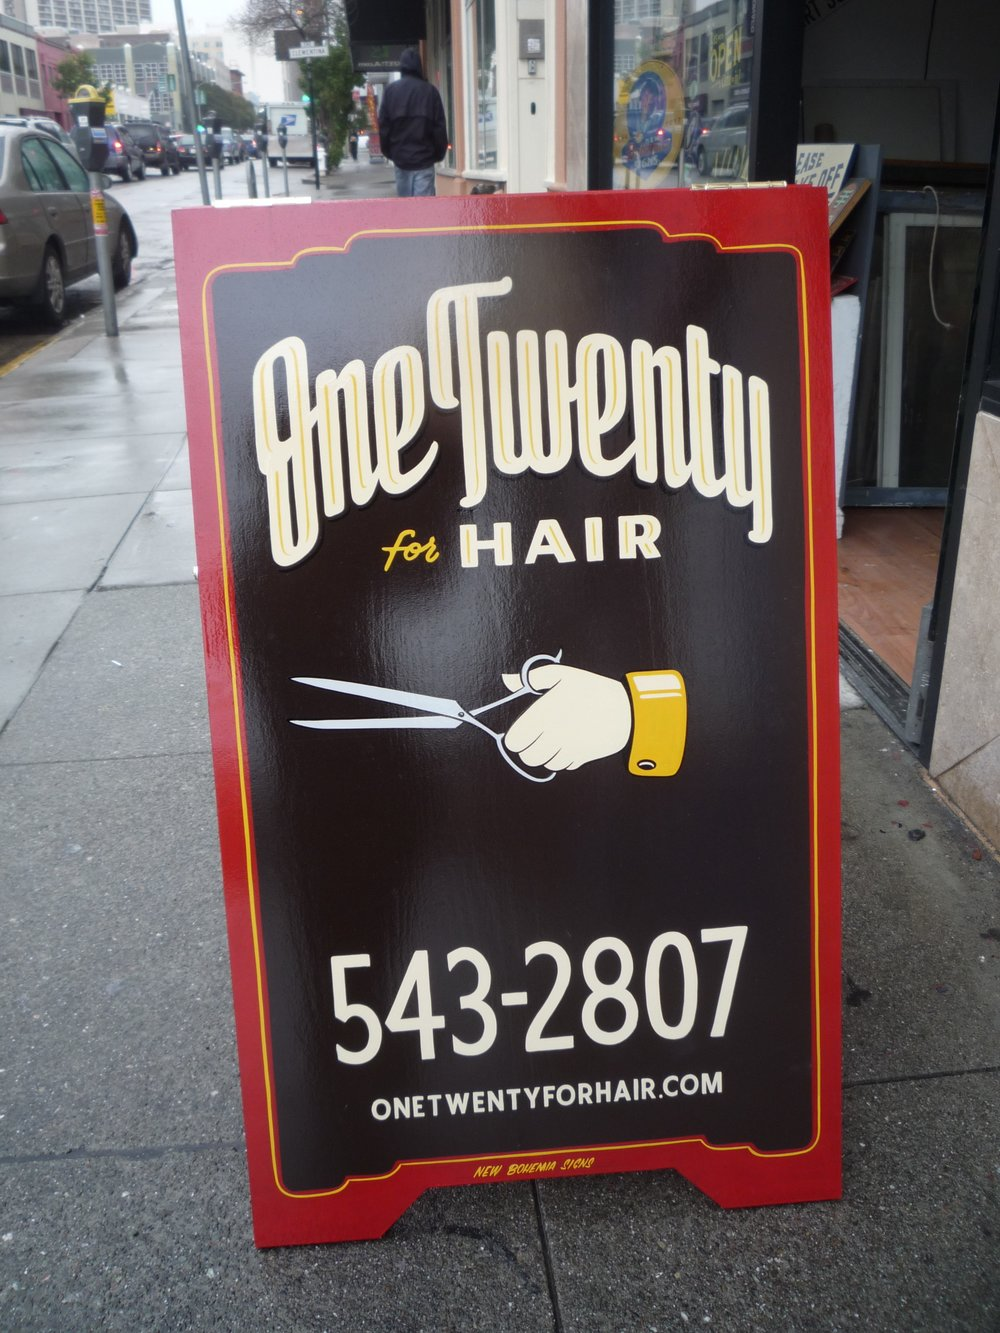 A-FRAME-one-twenty-for-hair_9352889807_o.jpg